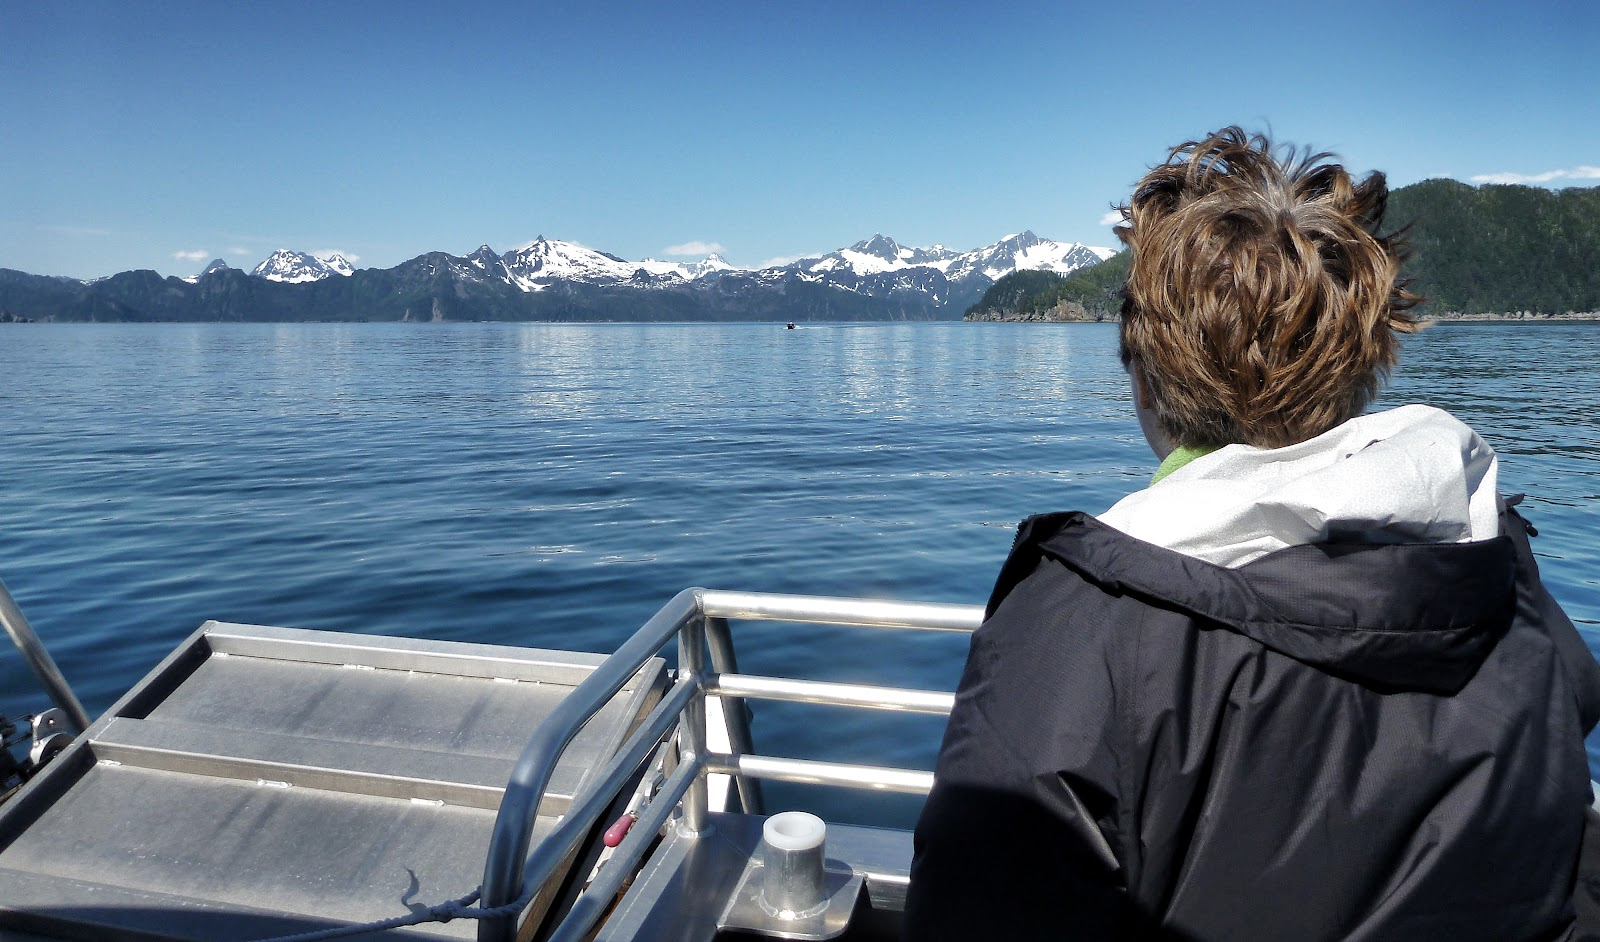 On the Way to the Kenai Peninsula, #alaska #resurrectionbay #kenai 2013